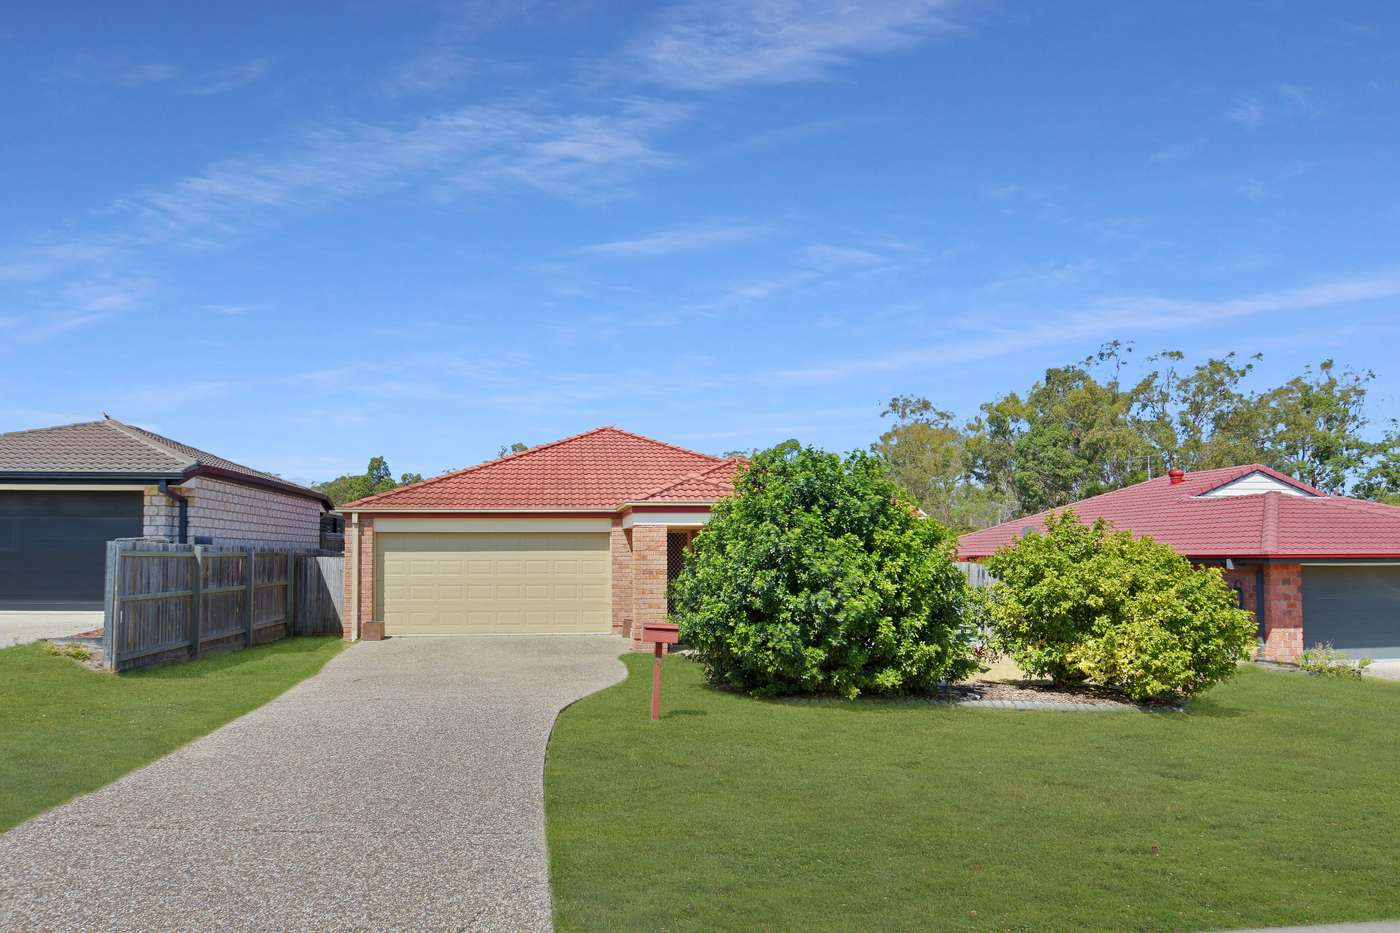 Main view of Homely house listing, 29 Lamberth Road East, Heritage Park, QLD 4118